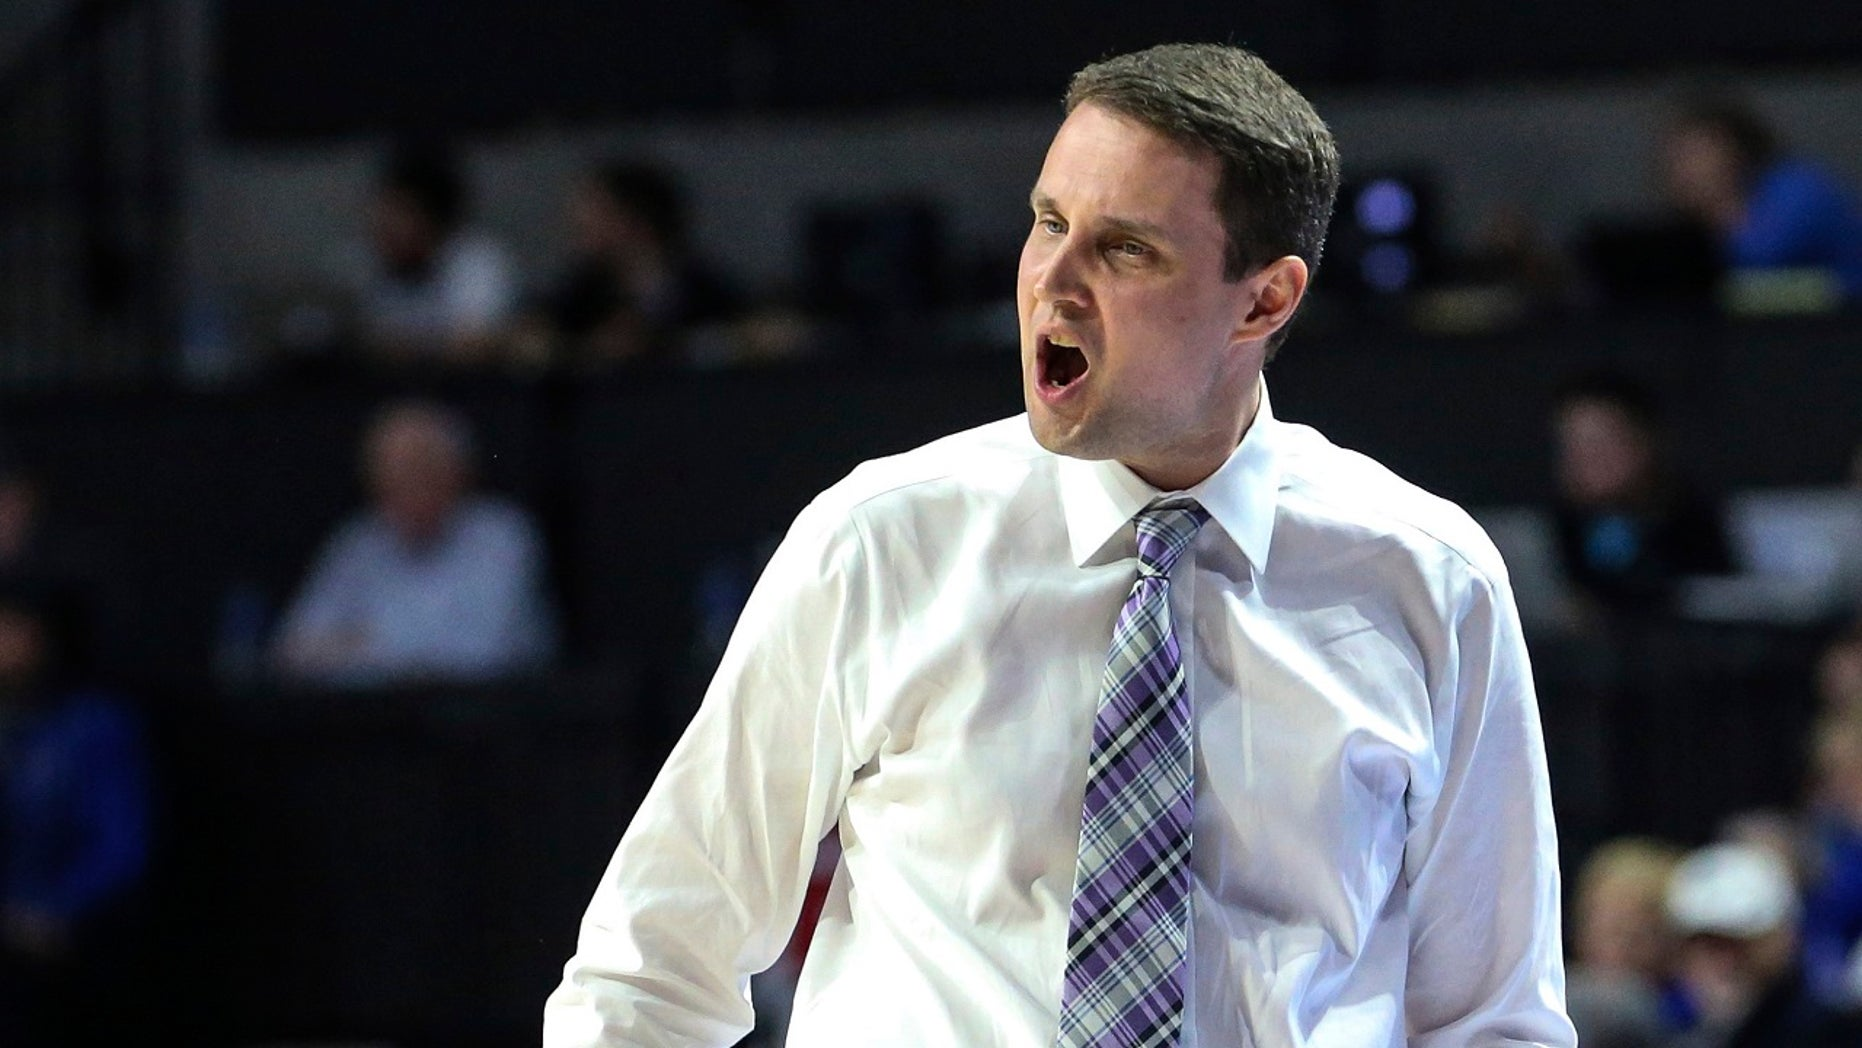 Will Wade suspended indefinitely after Federal Bureau of Investigation wire tap report